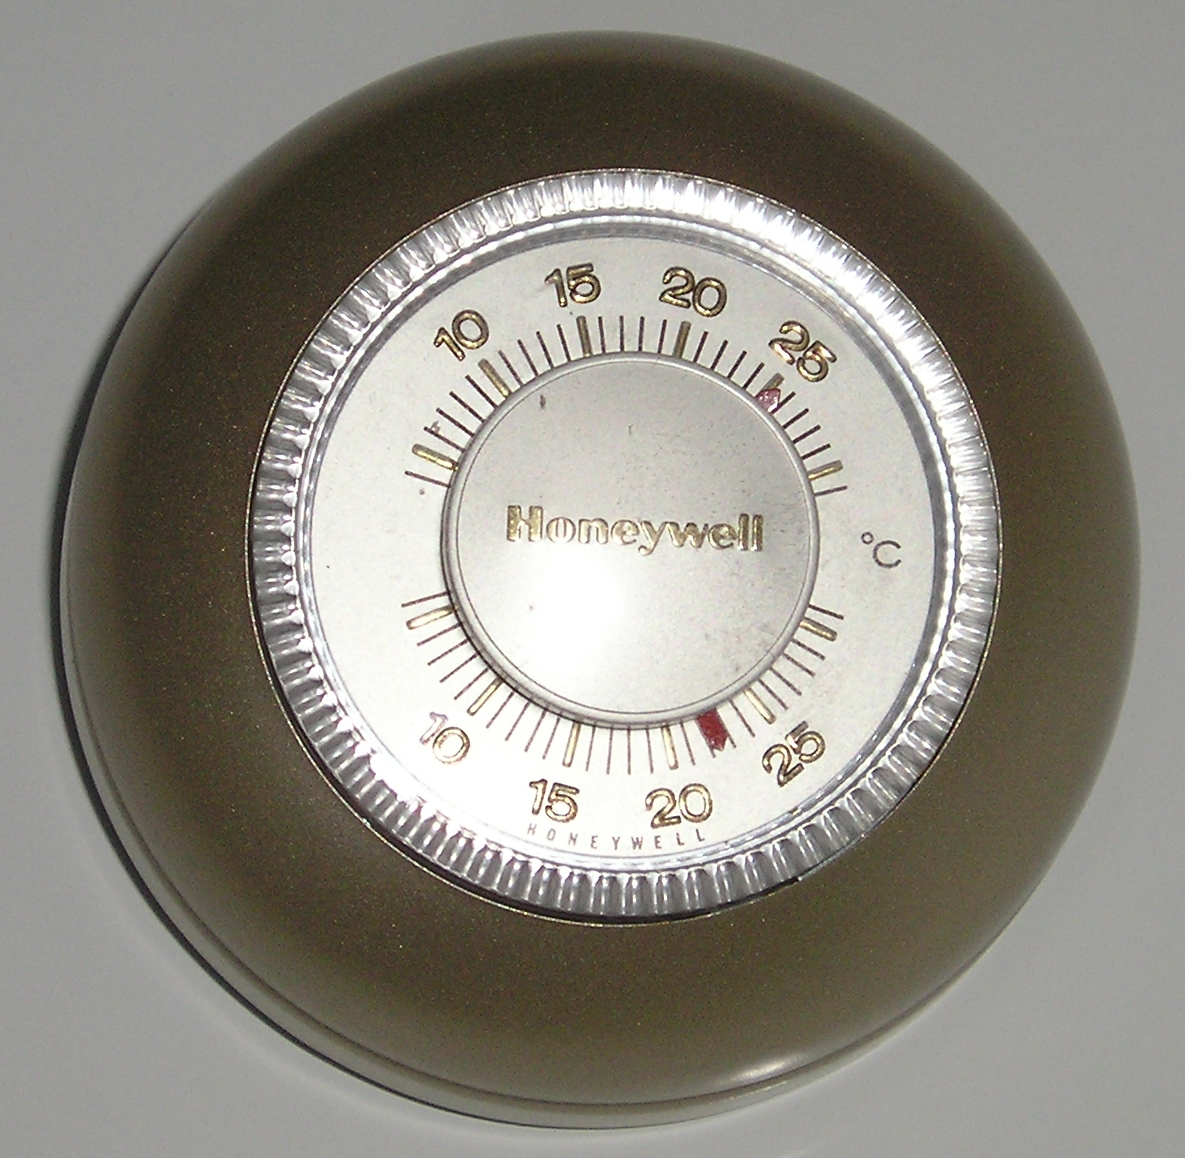 Honeywell Evohome thermostaat met iPhone-bediening nu in Nederland ...